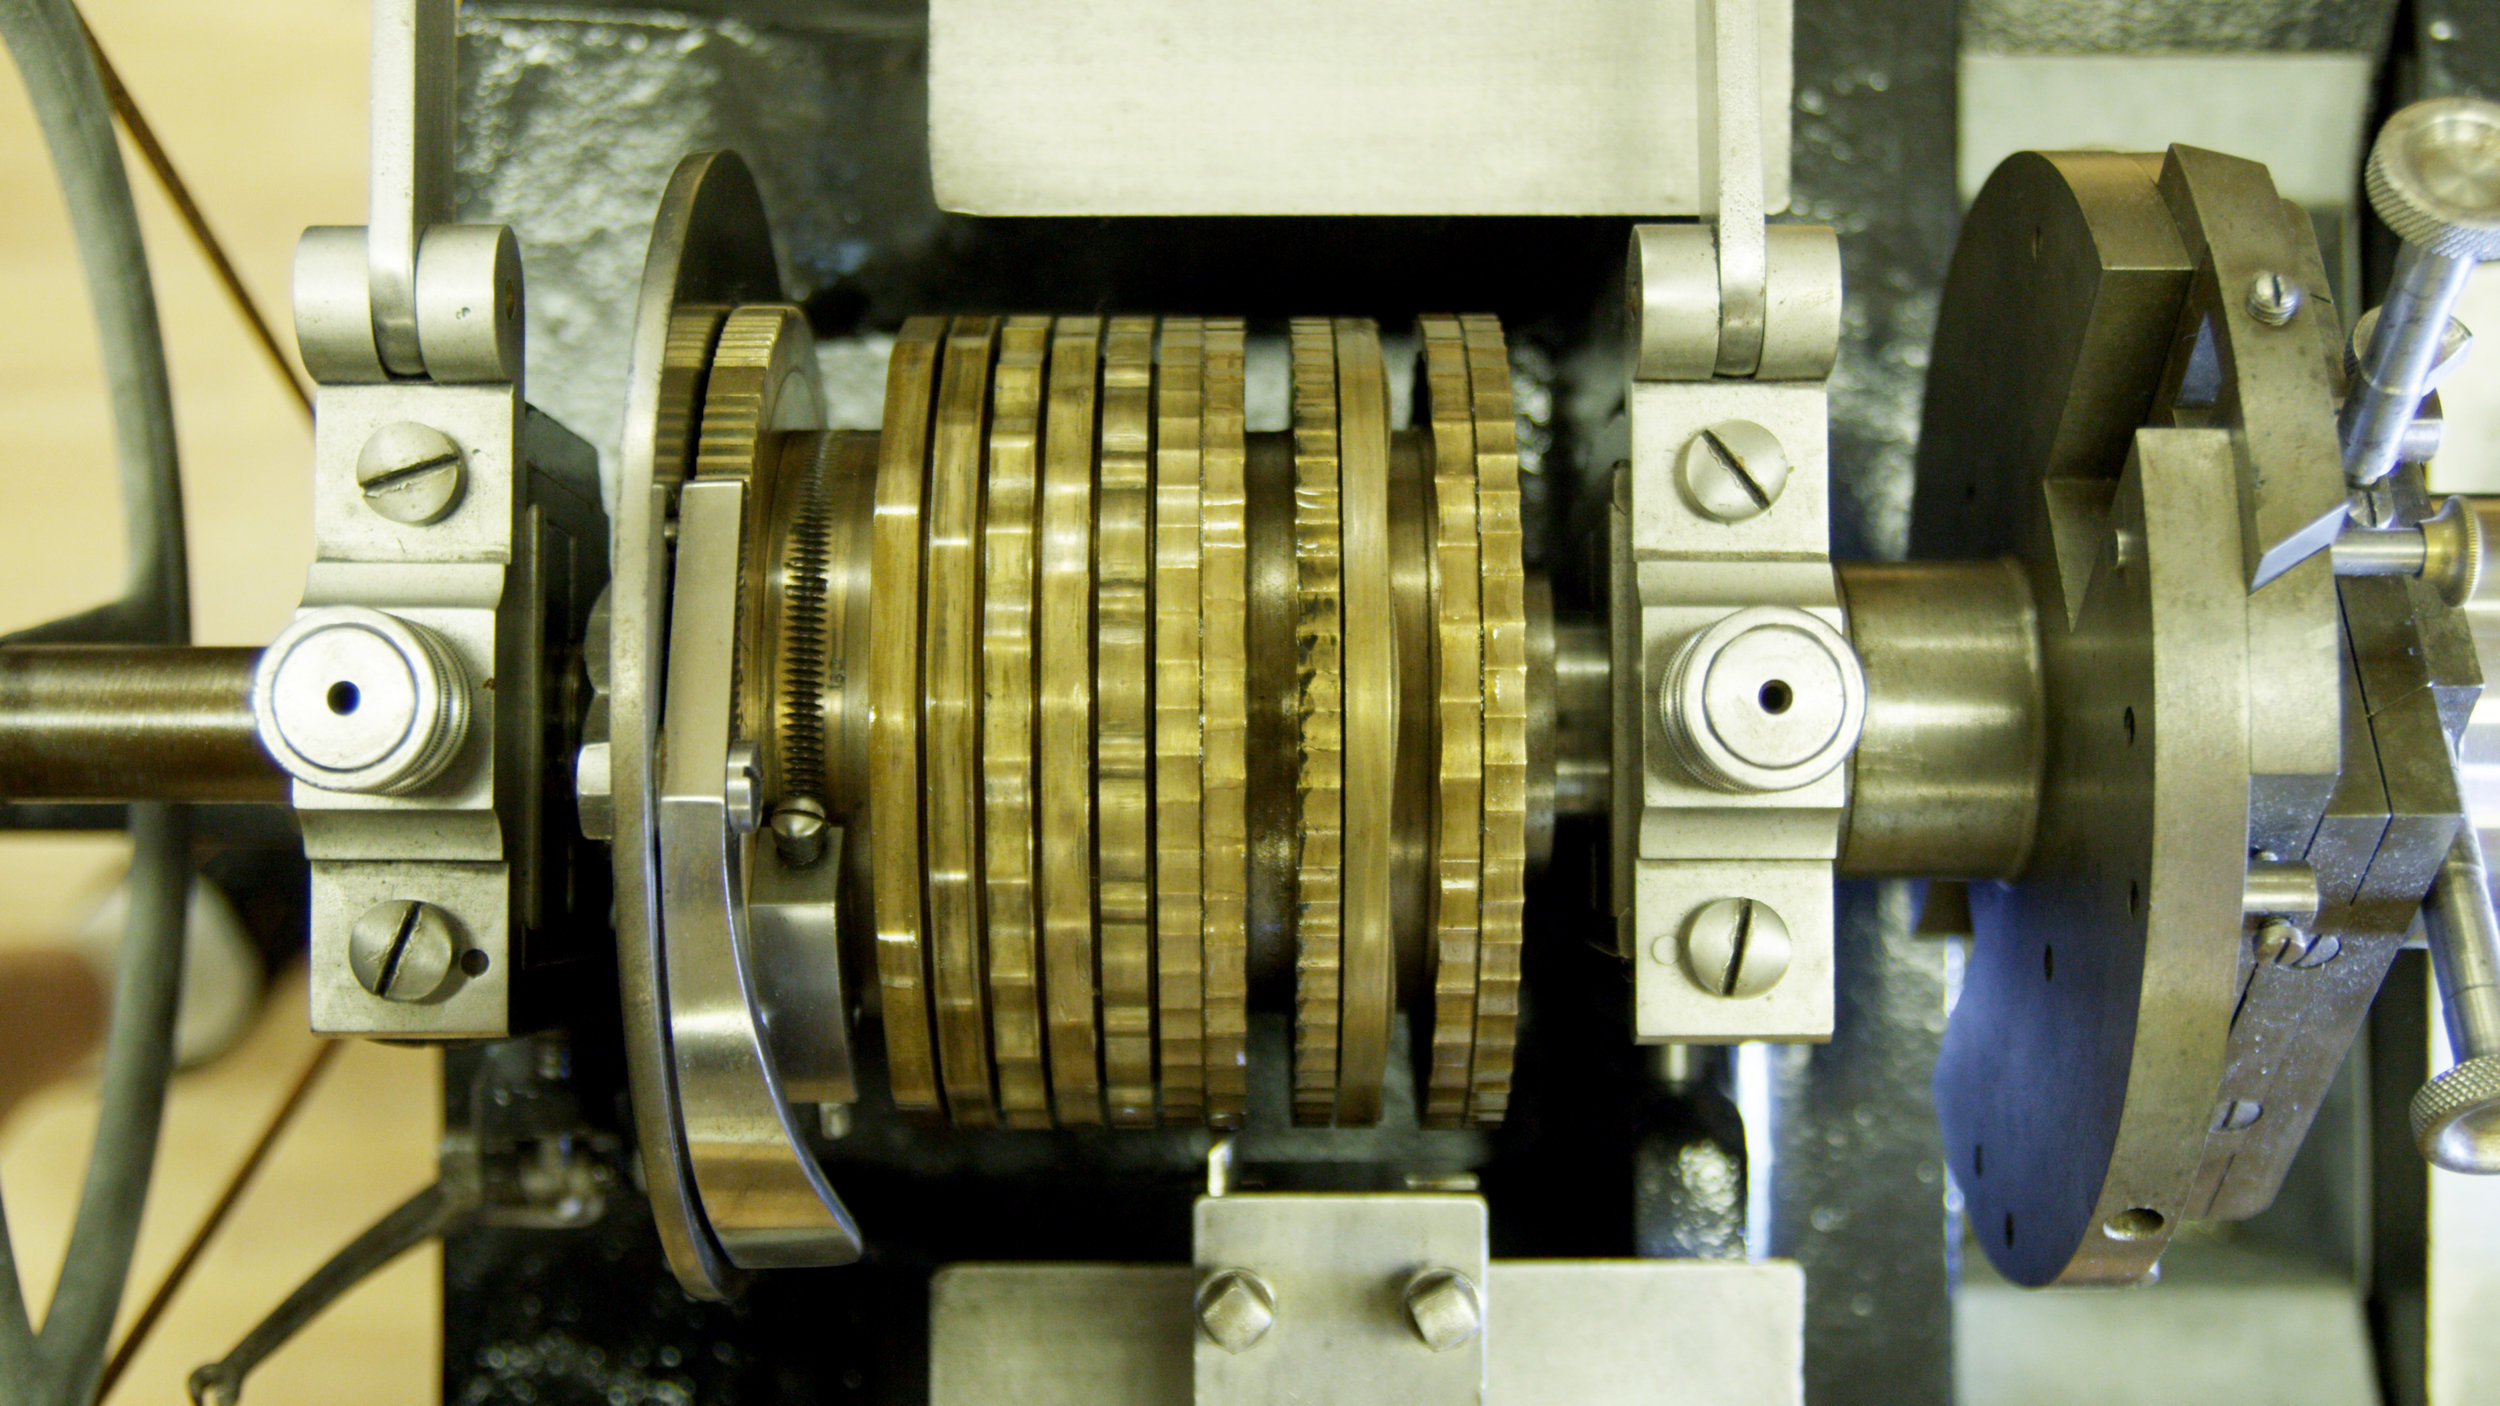 As Roland hand cranks the rose engine, the pattern of various rosés can be transferred to the watch dial.